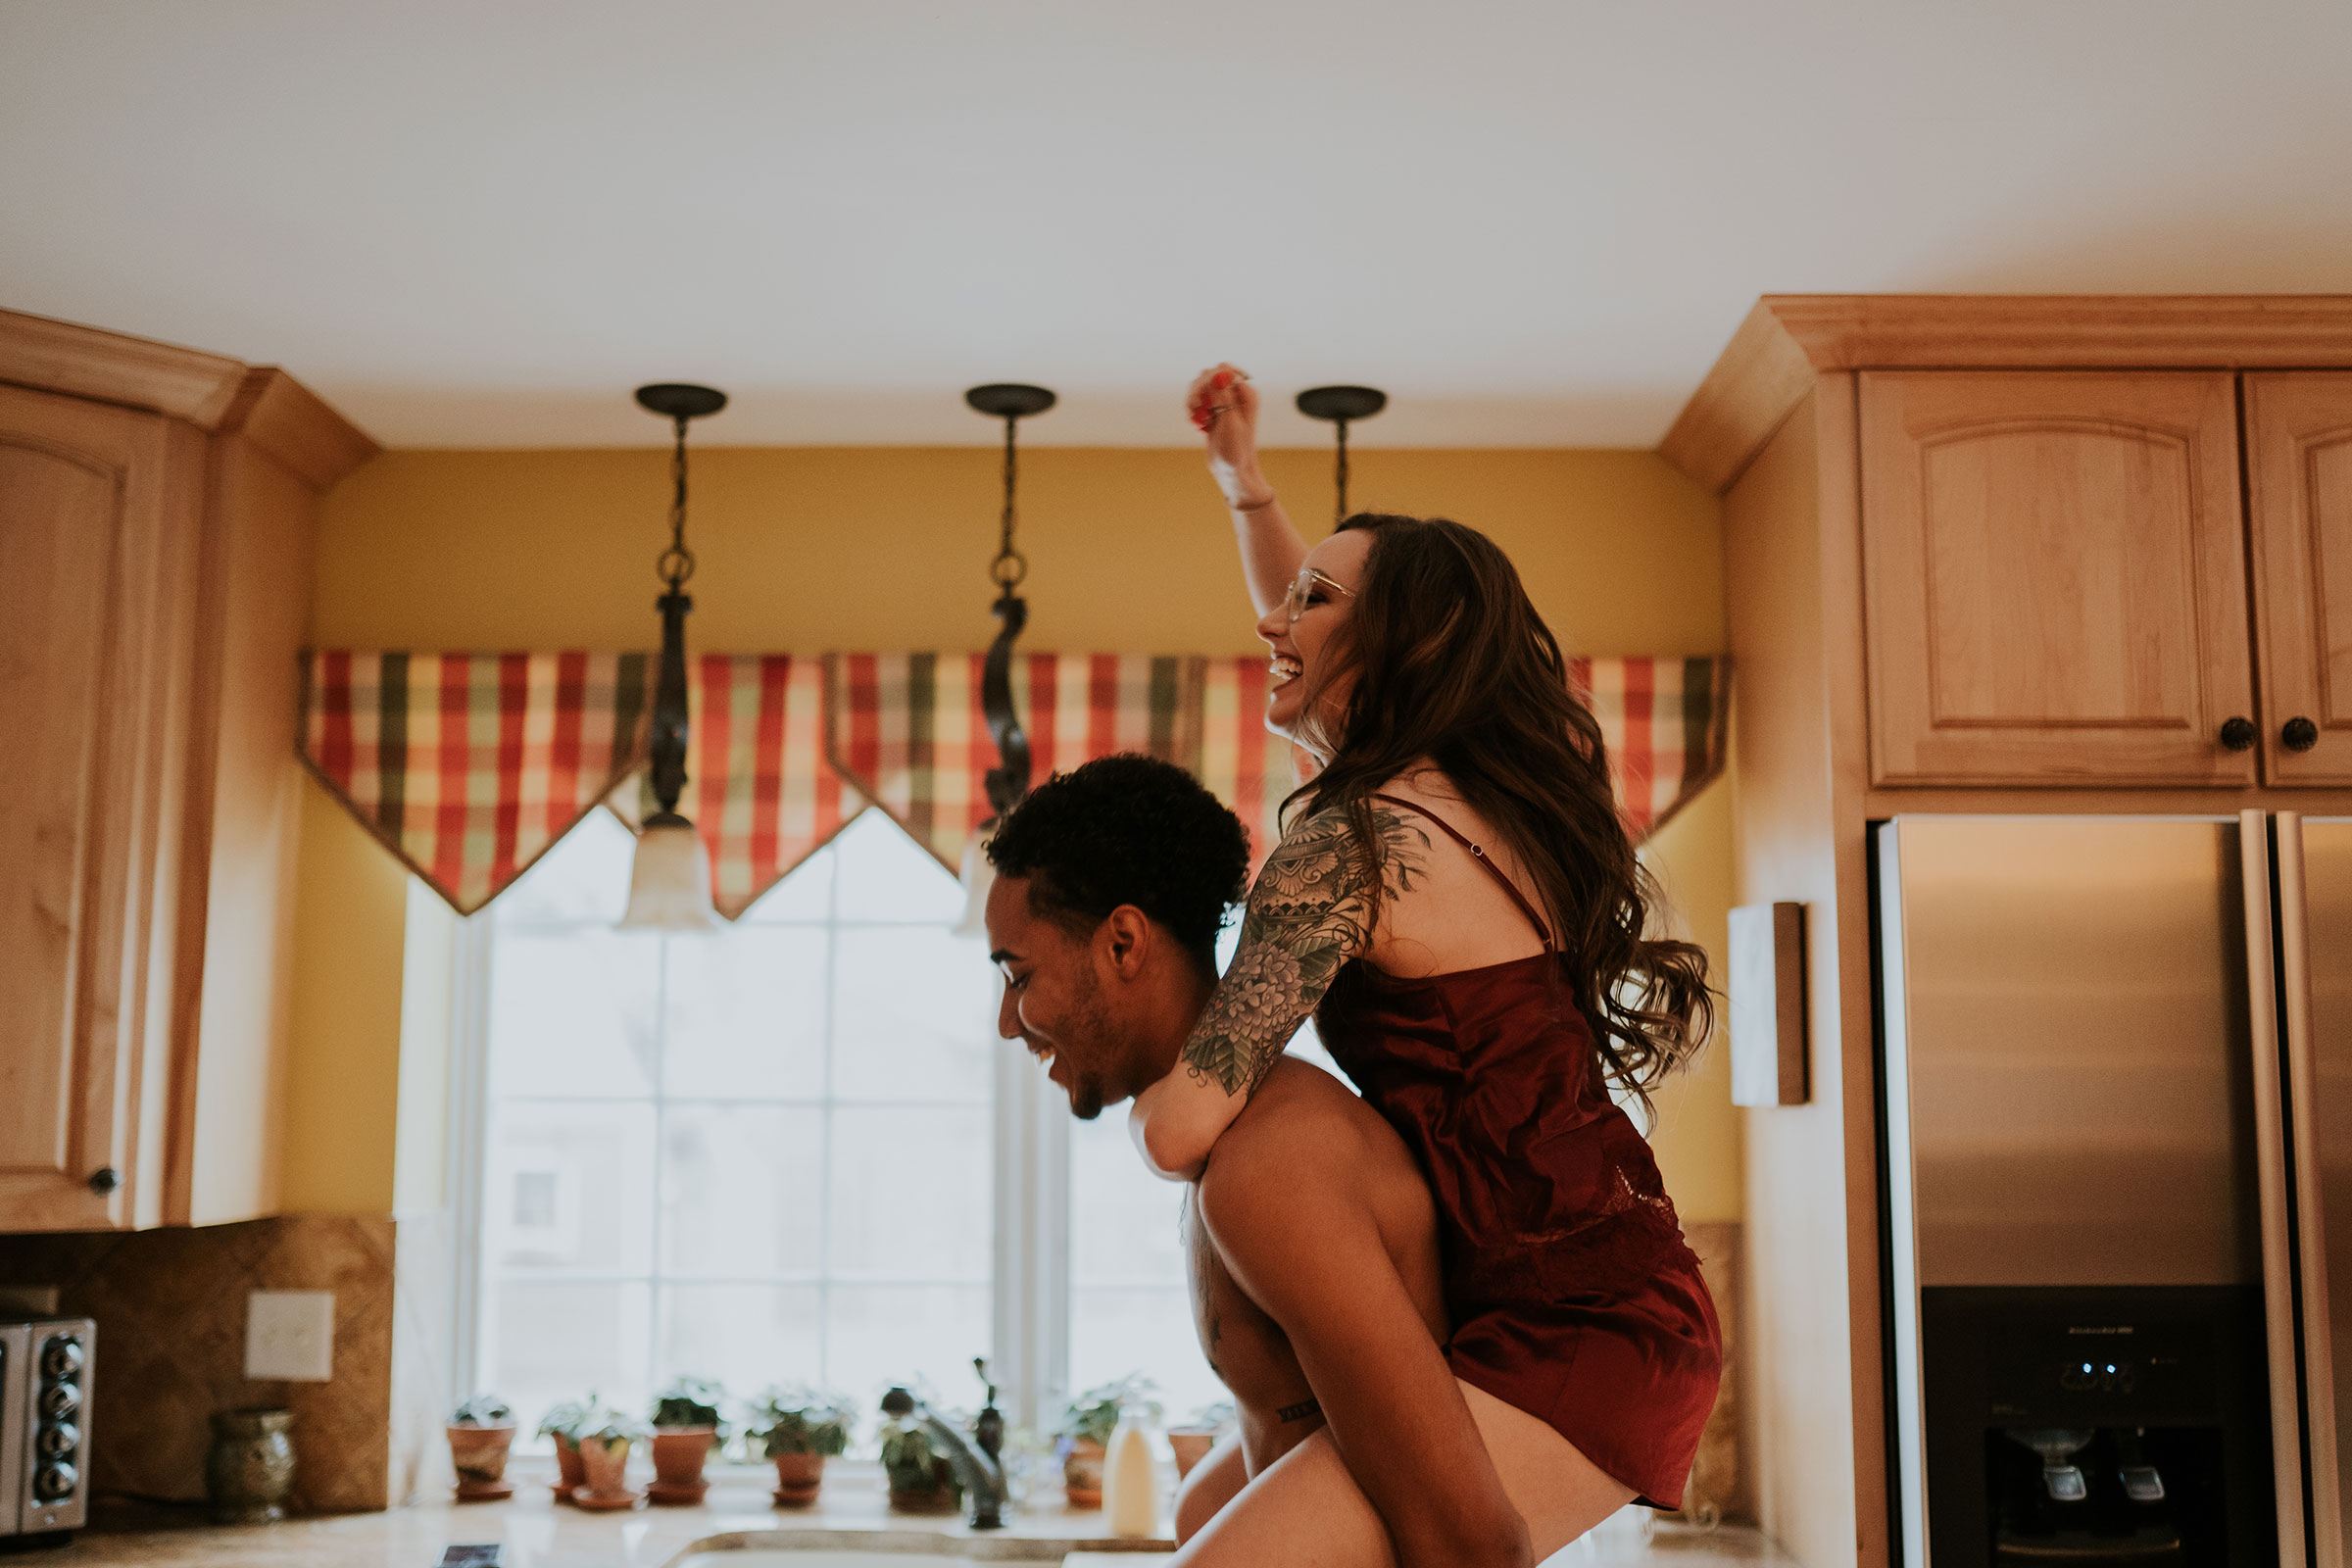 couple-playing-in-kitchen-laughing-engagement-desmoines-iowa-raelyn-ramey-photography.jpg